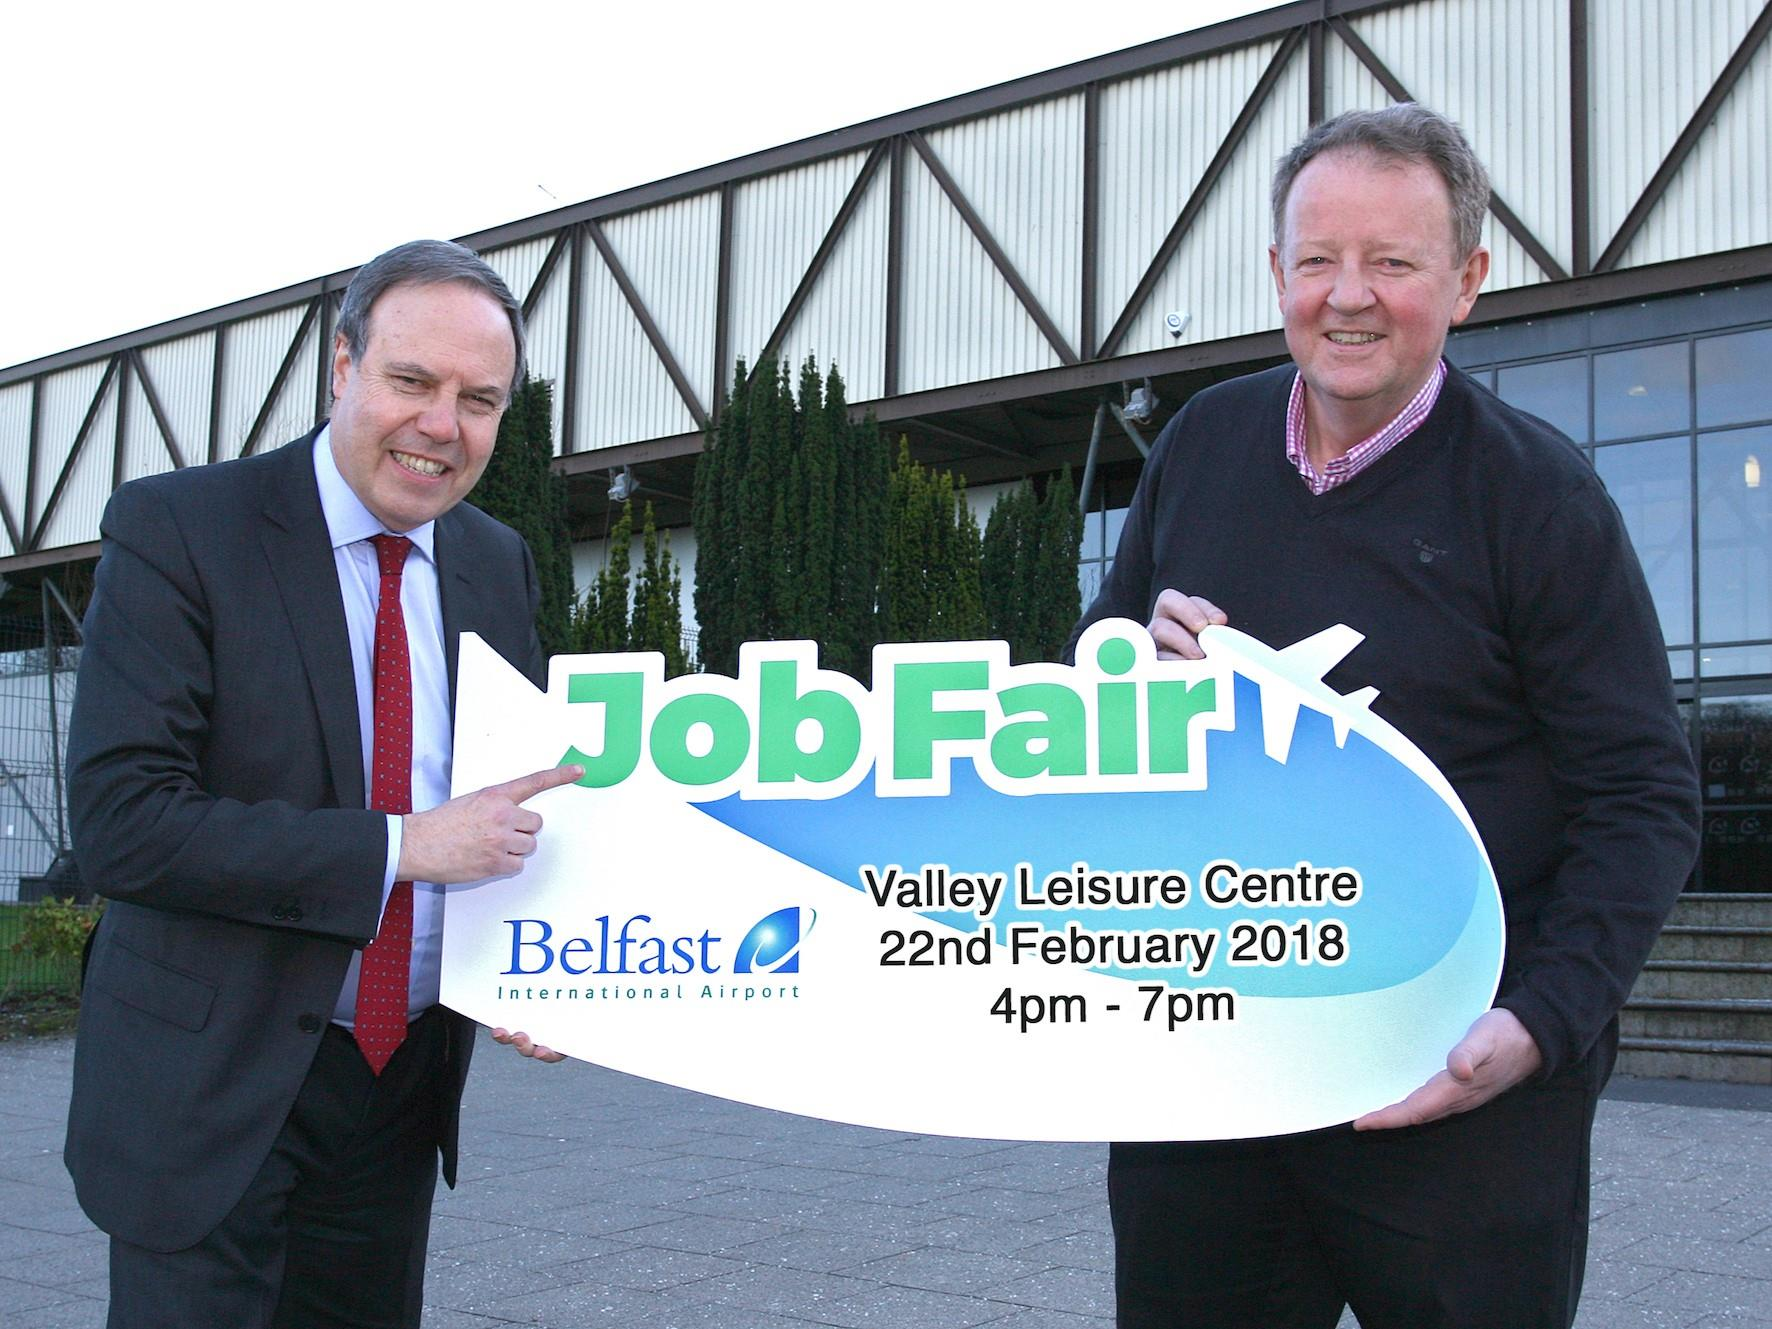 Airport Valley Leisure Centre  Job Fair has over 125 jobs on offer